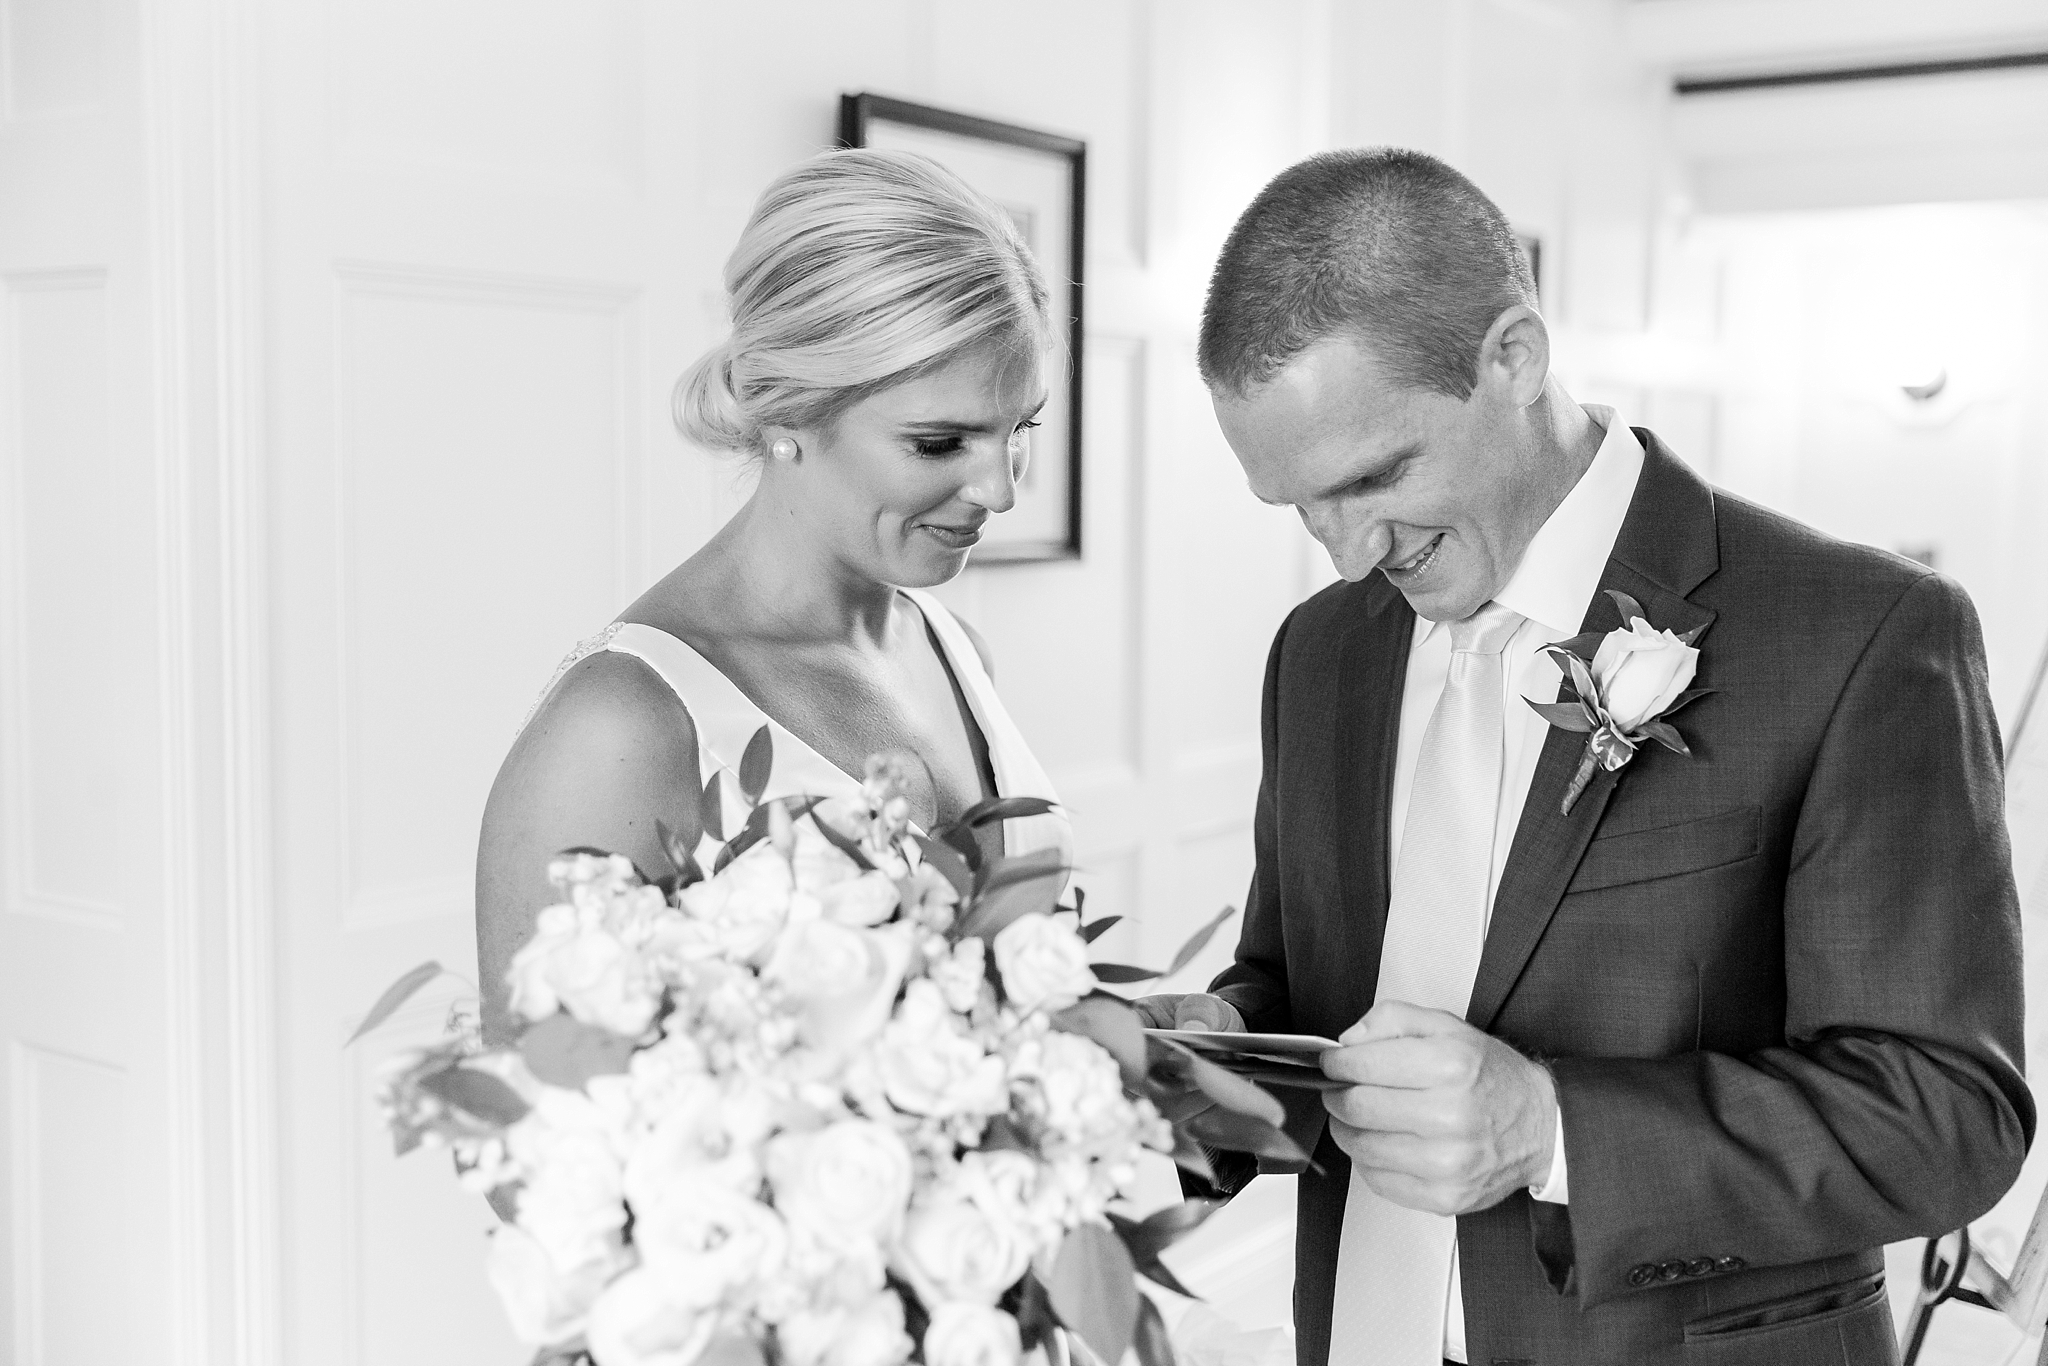 casually-chic-modern-wedding-photos-at-the-chapman-house-in-rochester-michigan-by-courtney-carolyn-photography_0019.jpg